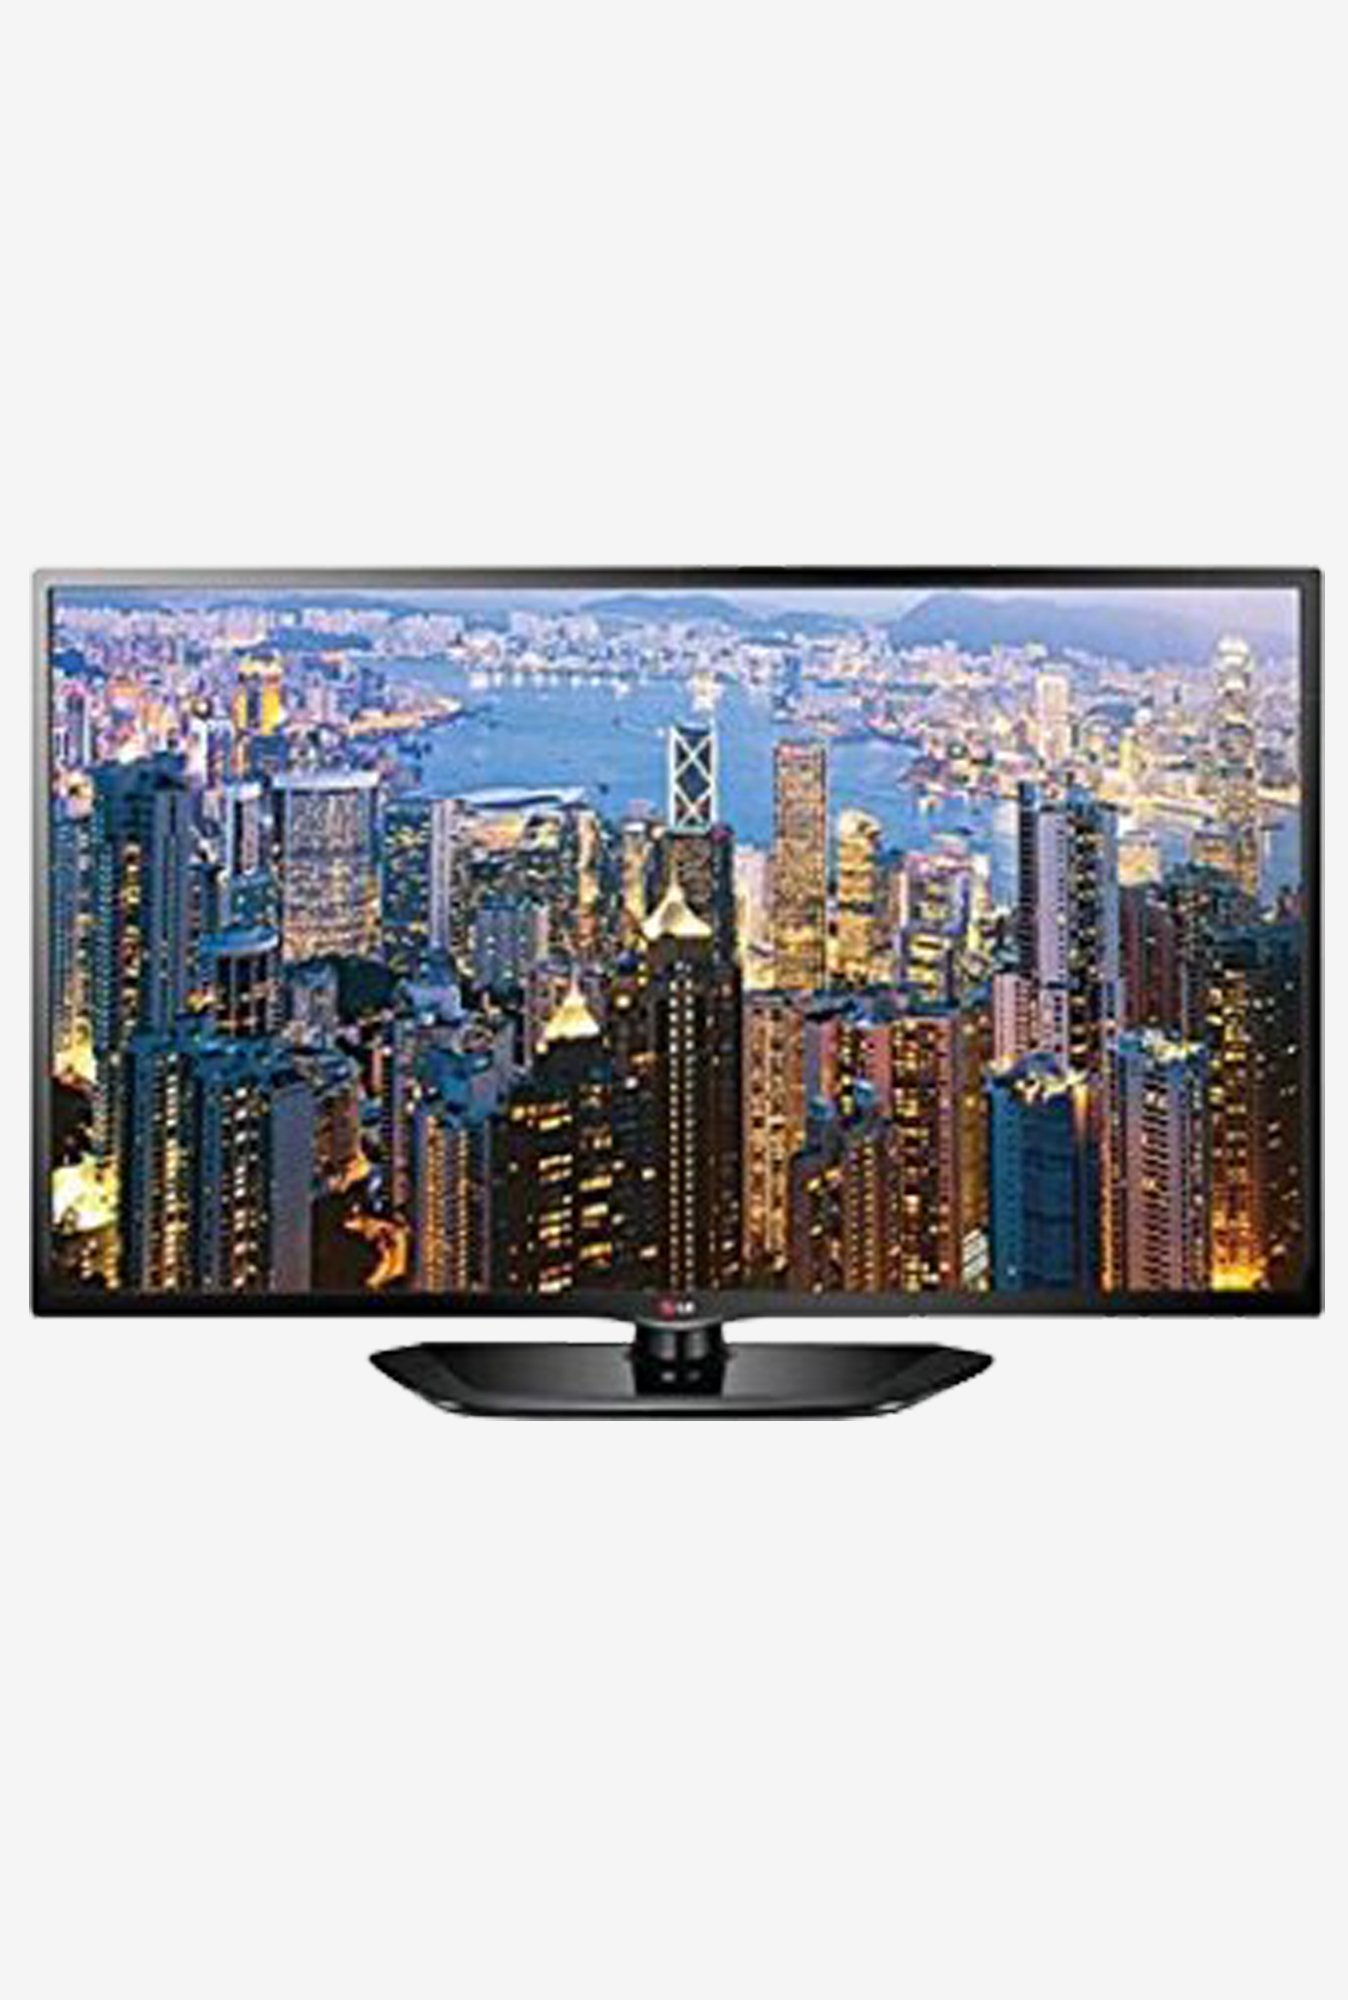 "LG 32LB530A 80 cm (32 "") HD Ready LED TV (Black)"